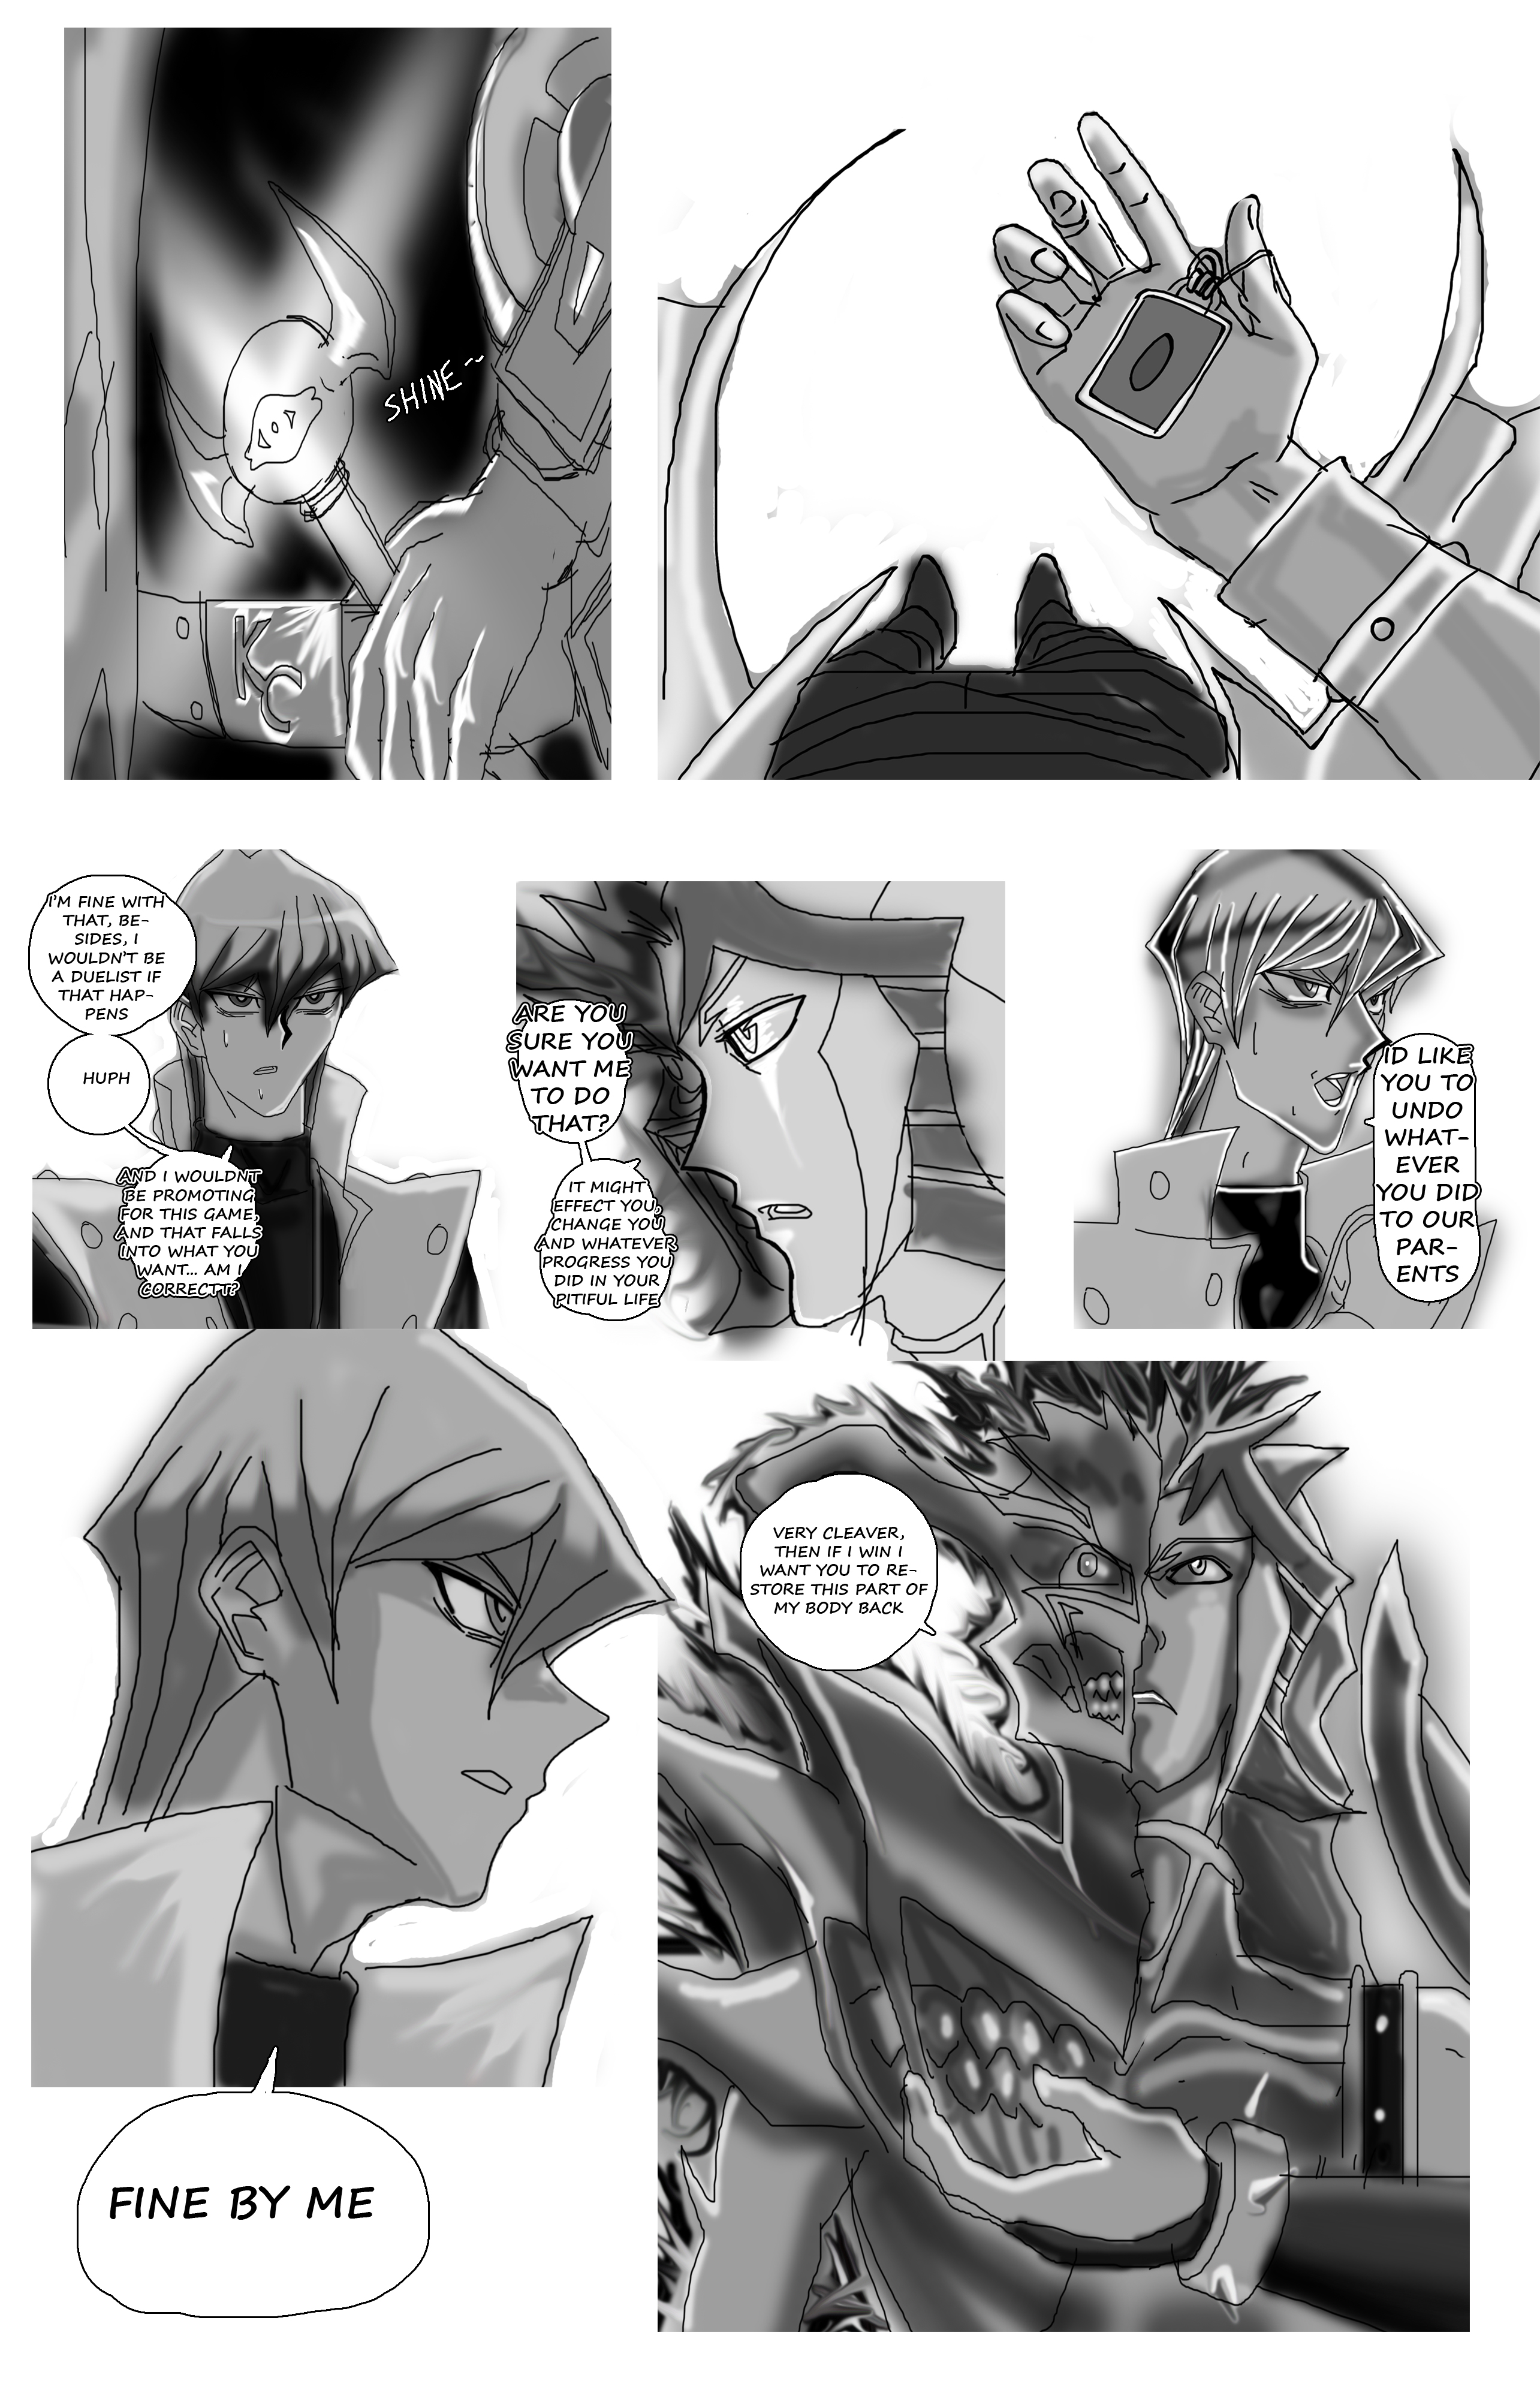 Yugioh BBT 2 Doujinshi ch 5  Page_7_by_mrawesome45-d8o2lsl